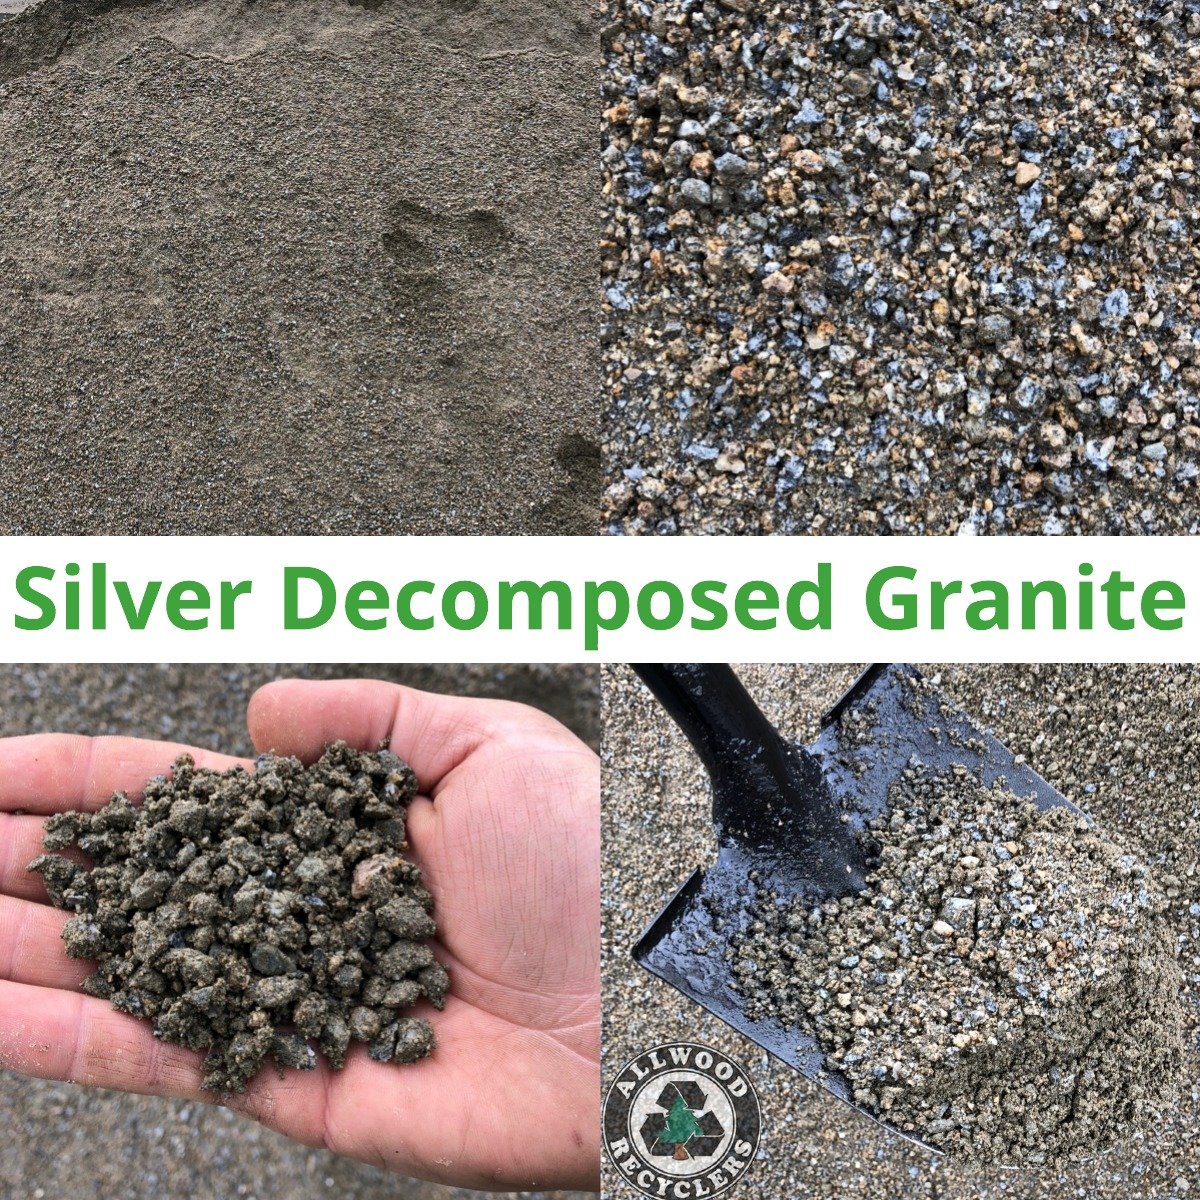 Silver Decomposed Granite